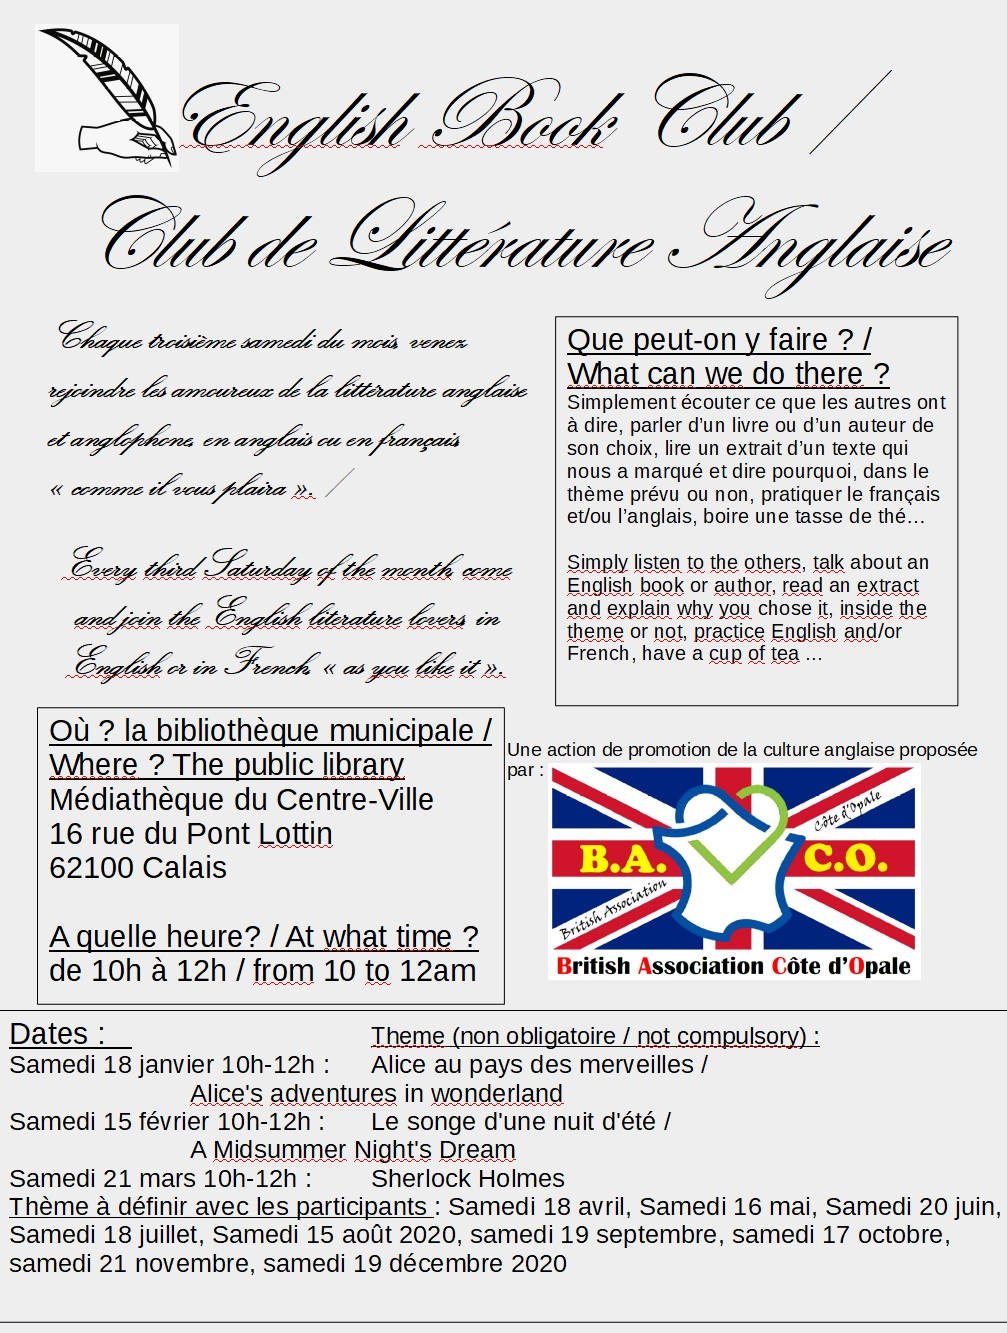 English Bookclub / Club de littérature anglaise Visuel10